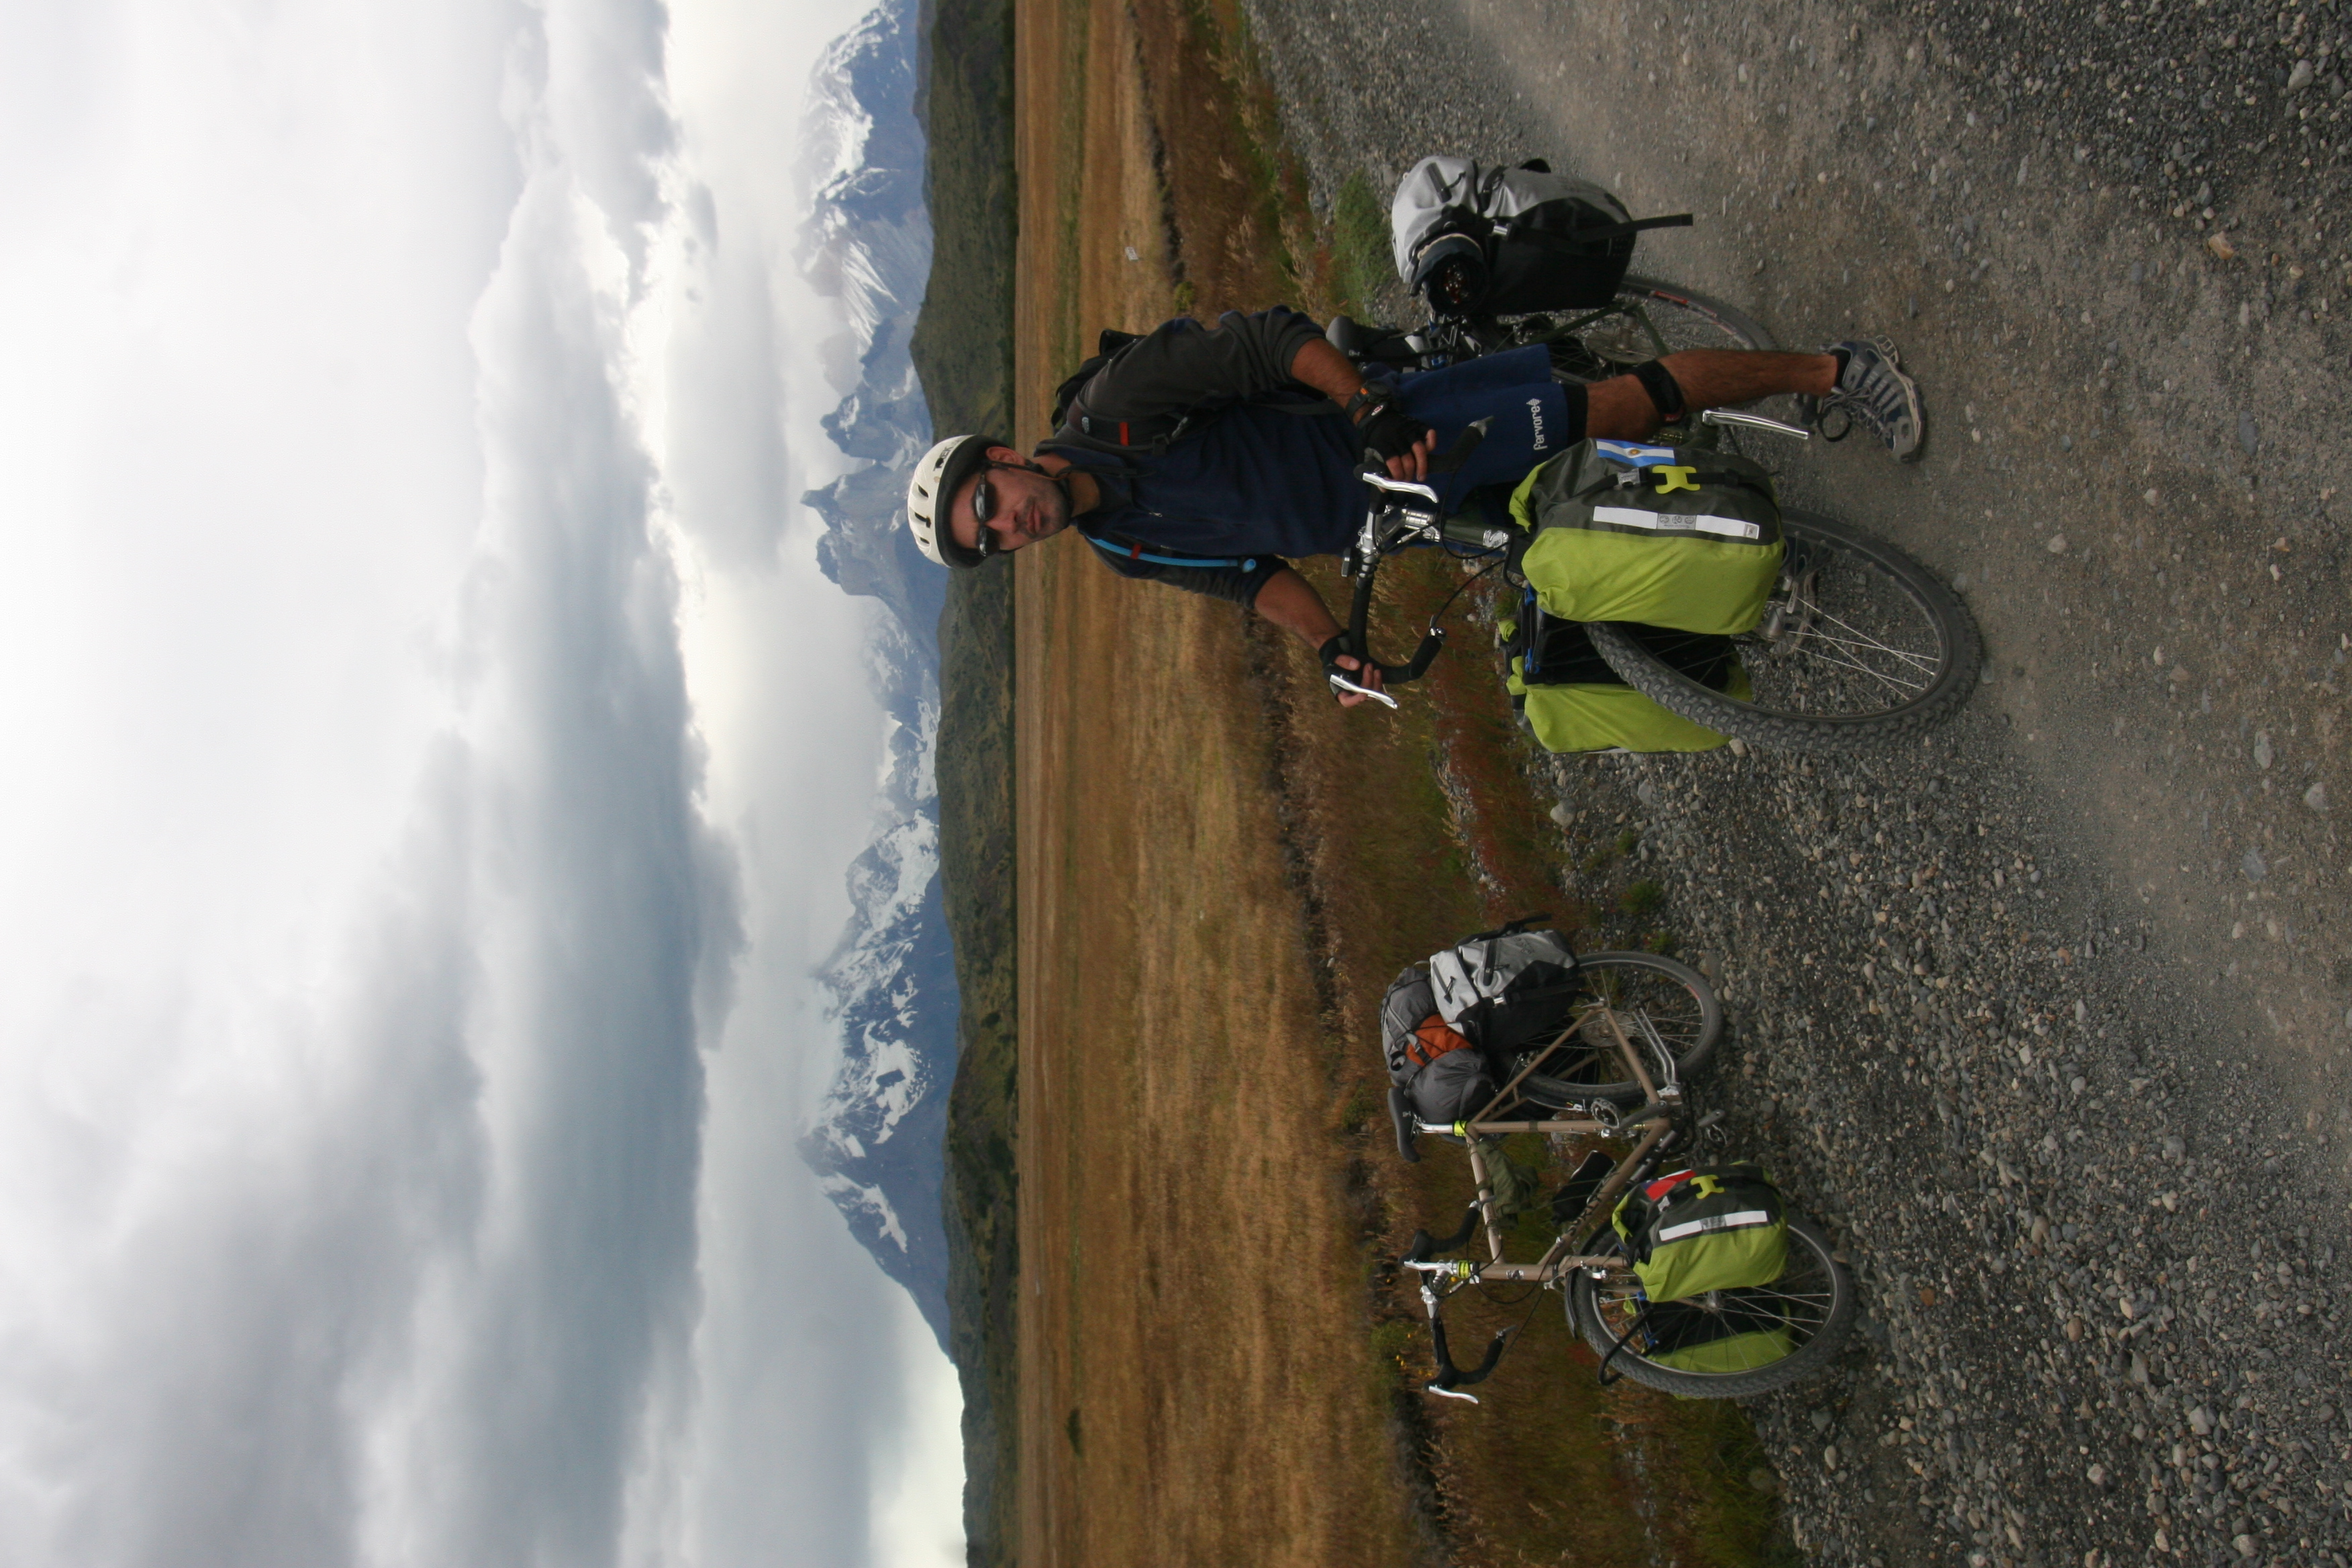 biking in Torres del Paine